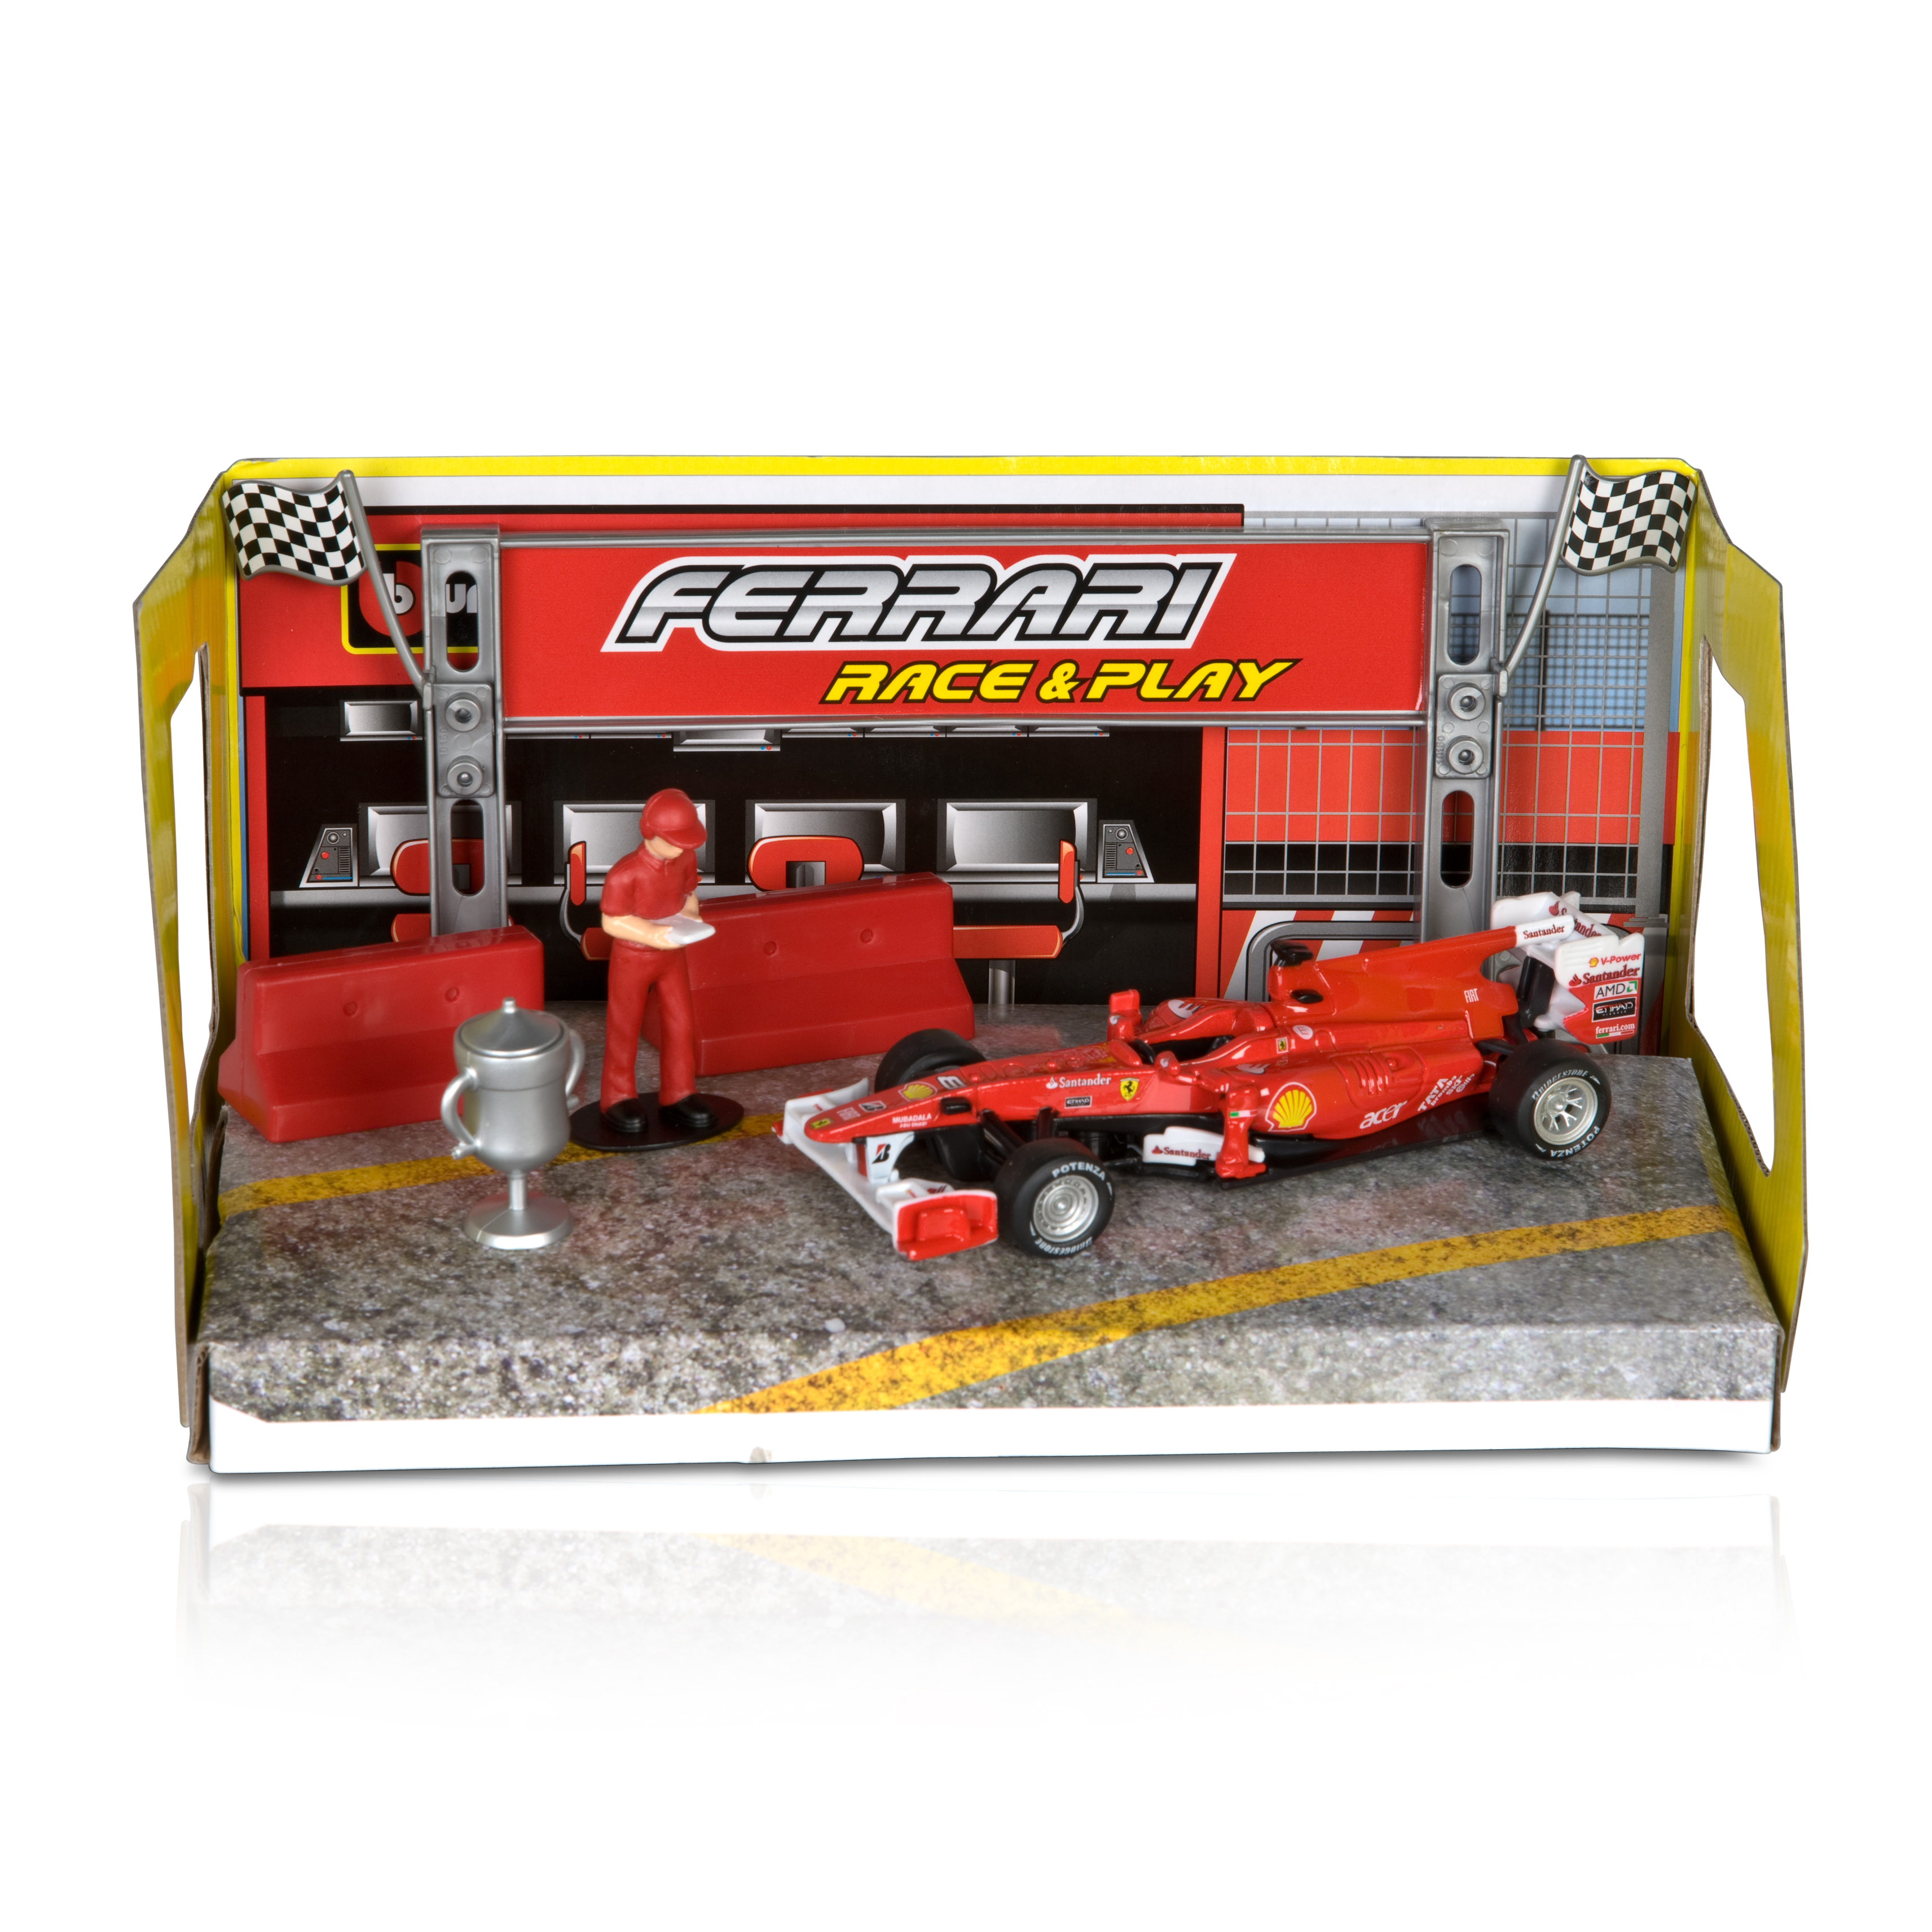 Scuderia Ferrari F10 1:32 Scale Race and Play